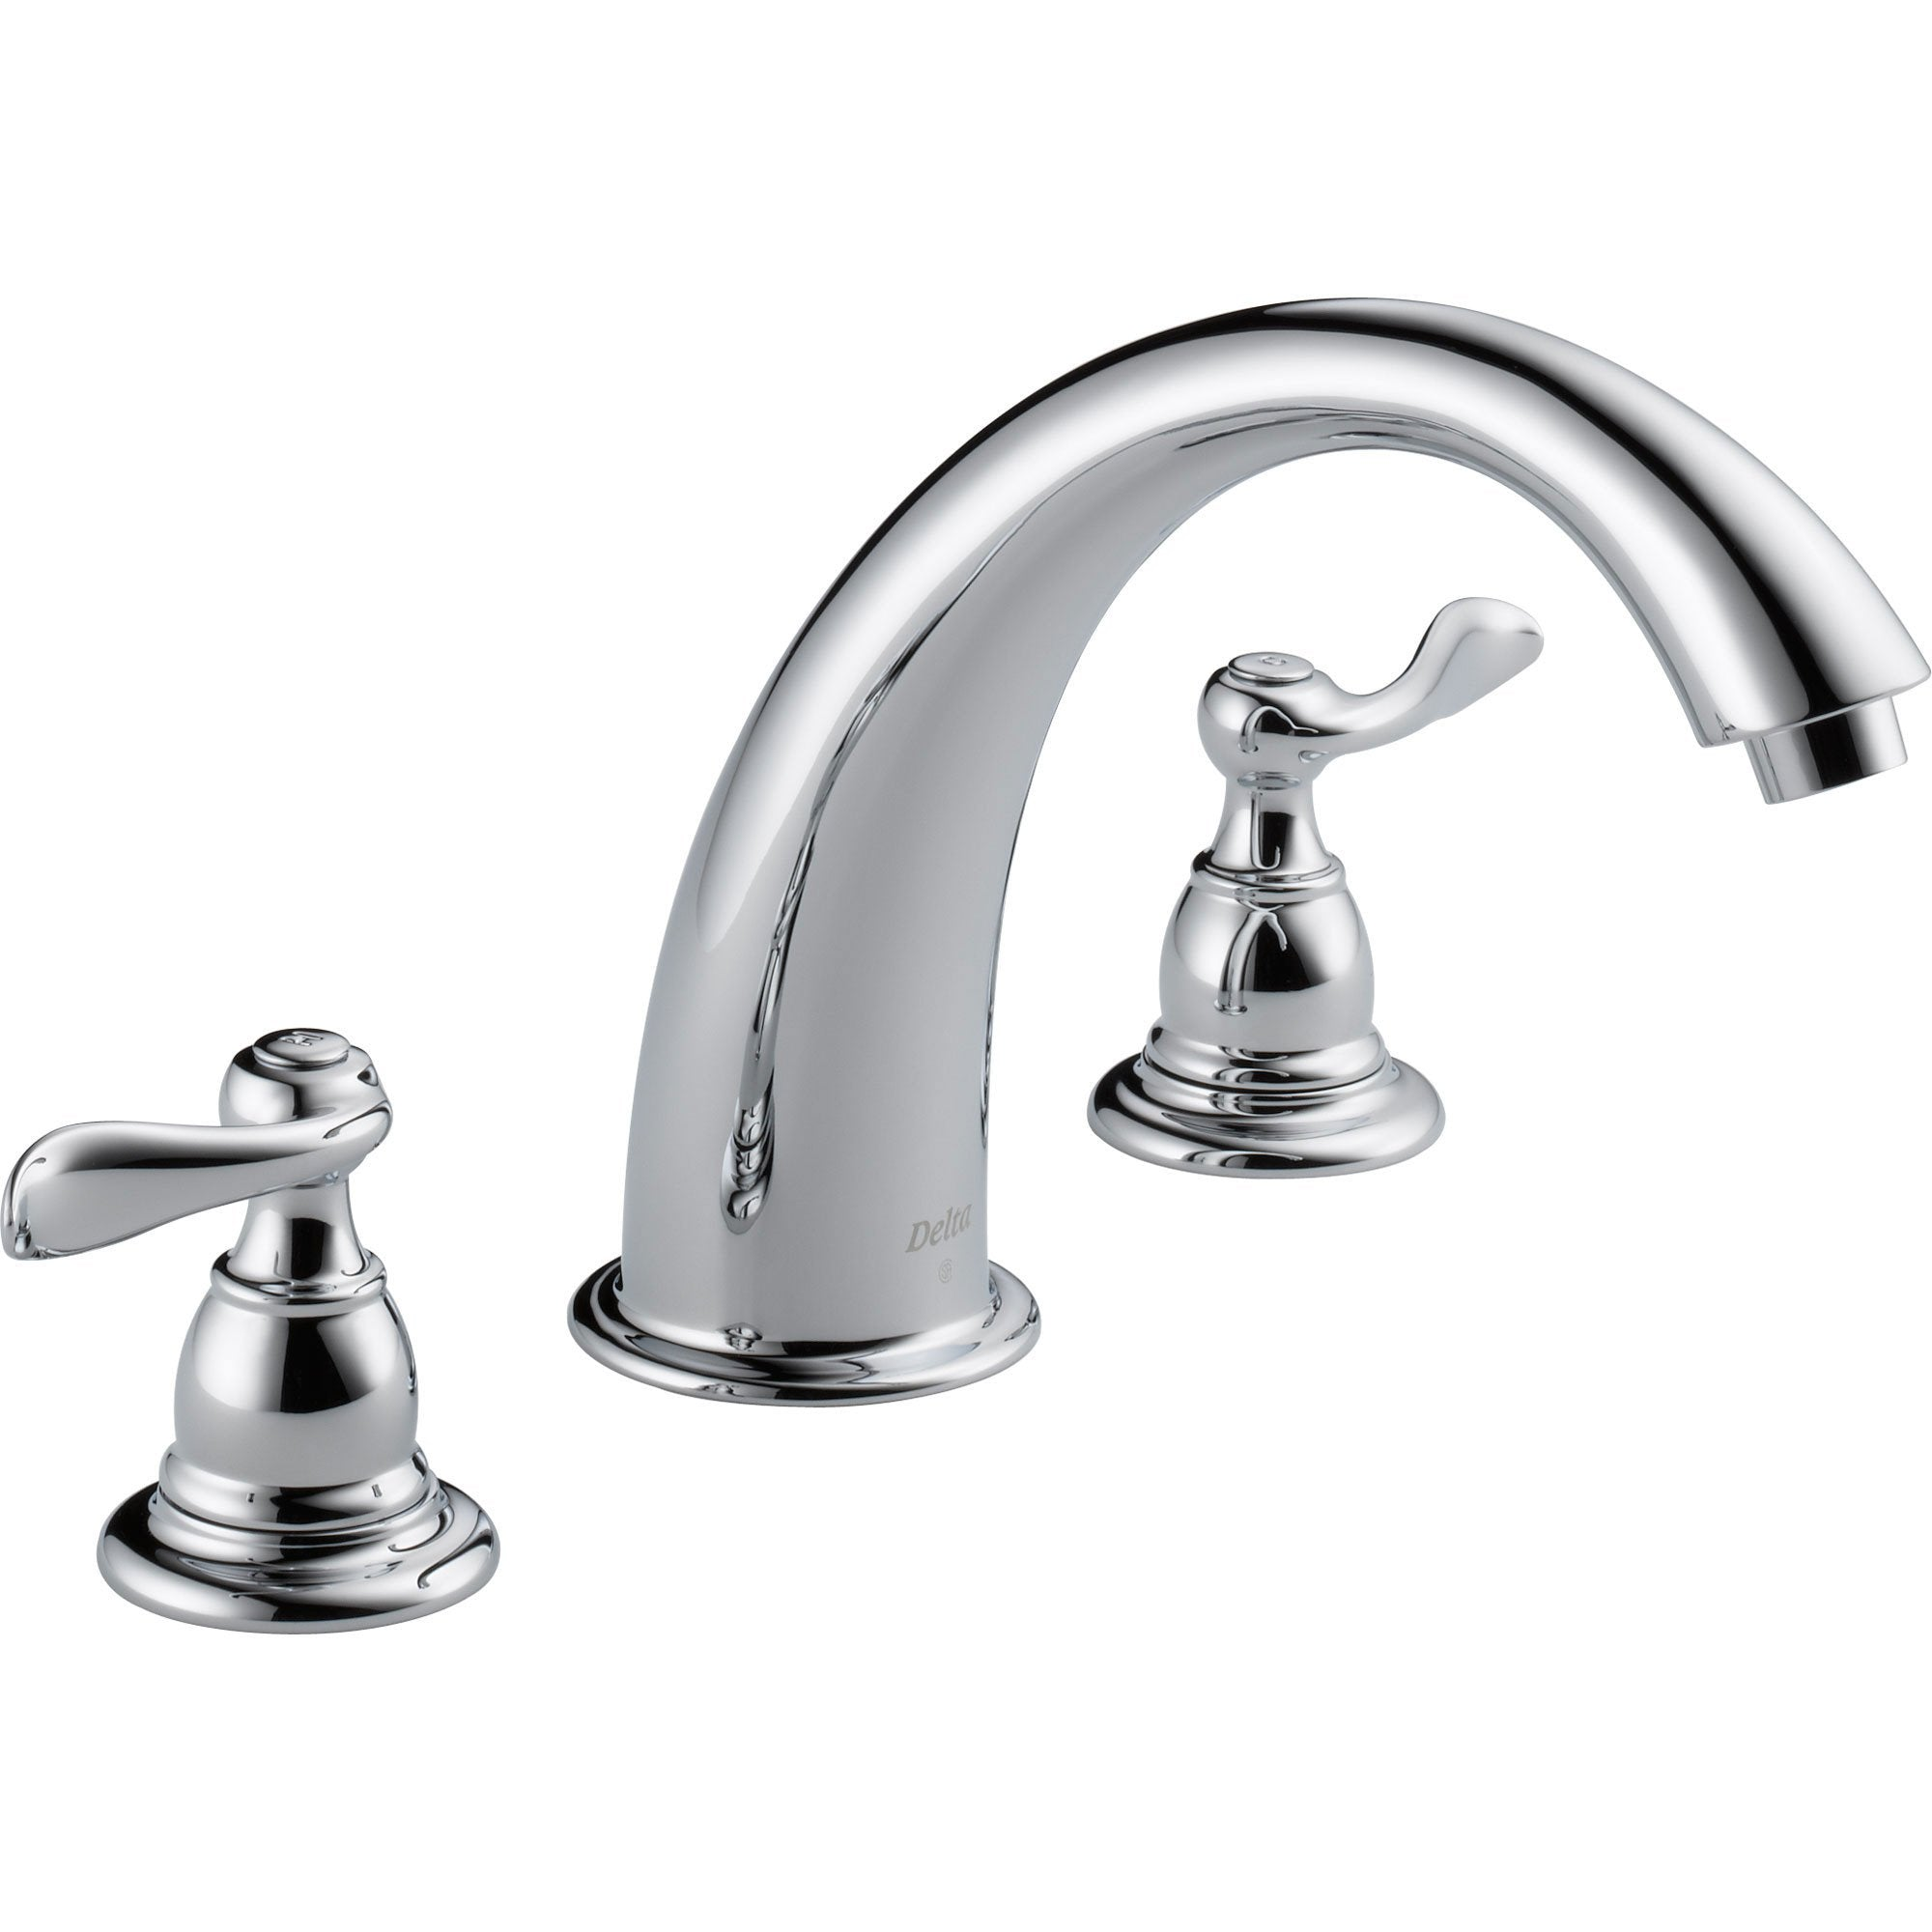 Delta Windemere Chrome Widespread Deck-Mount Roman Tub Faucet with Valve D891V